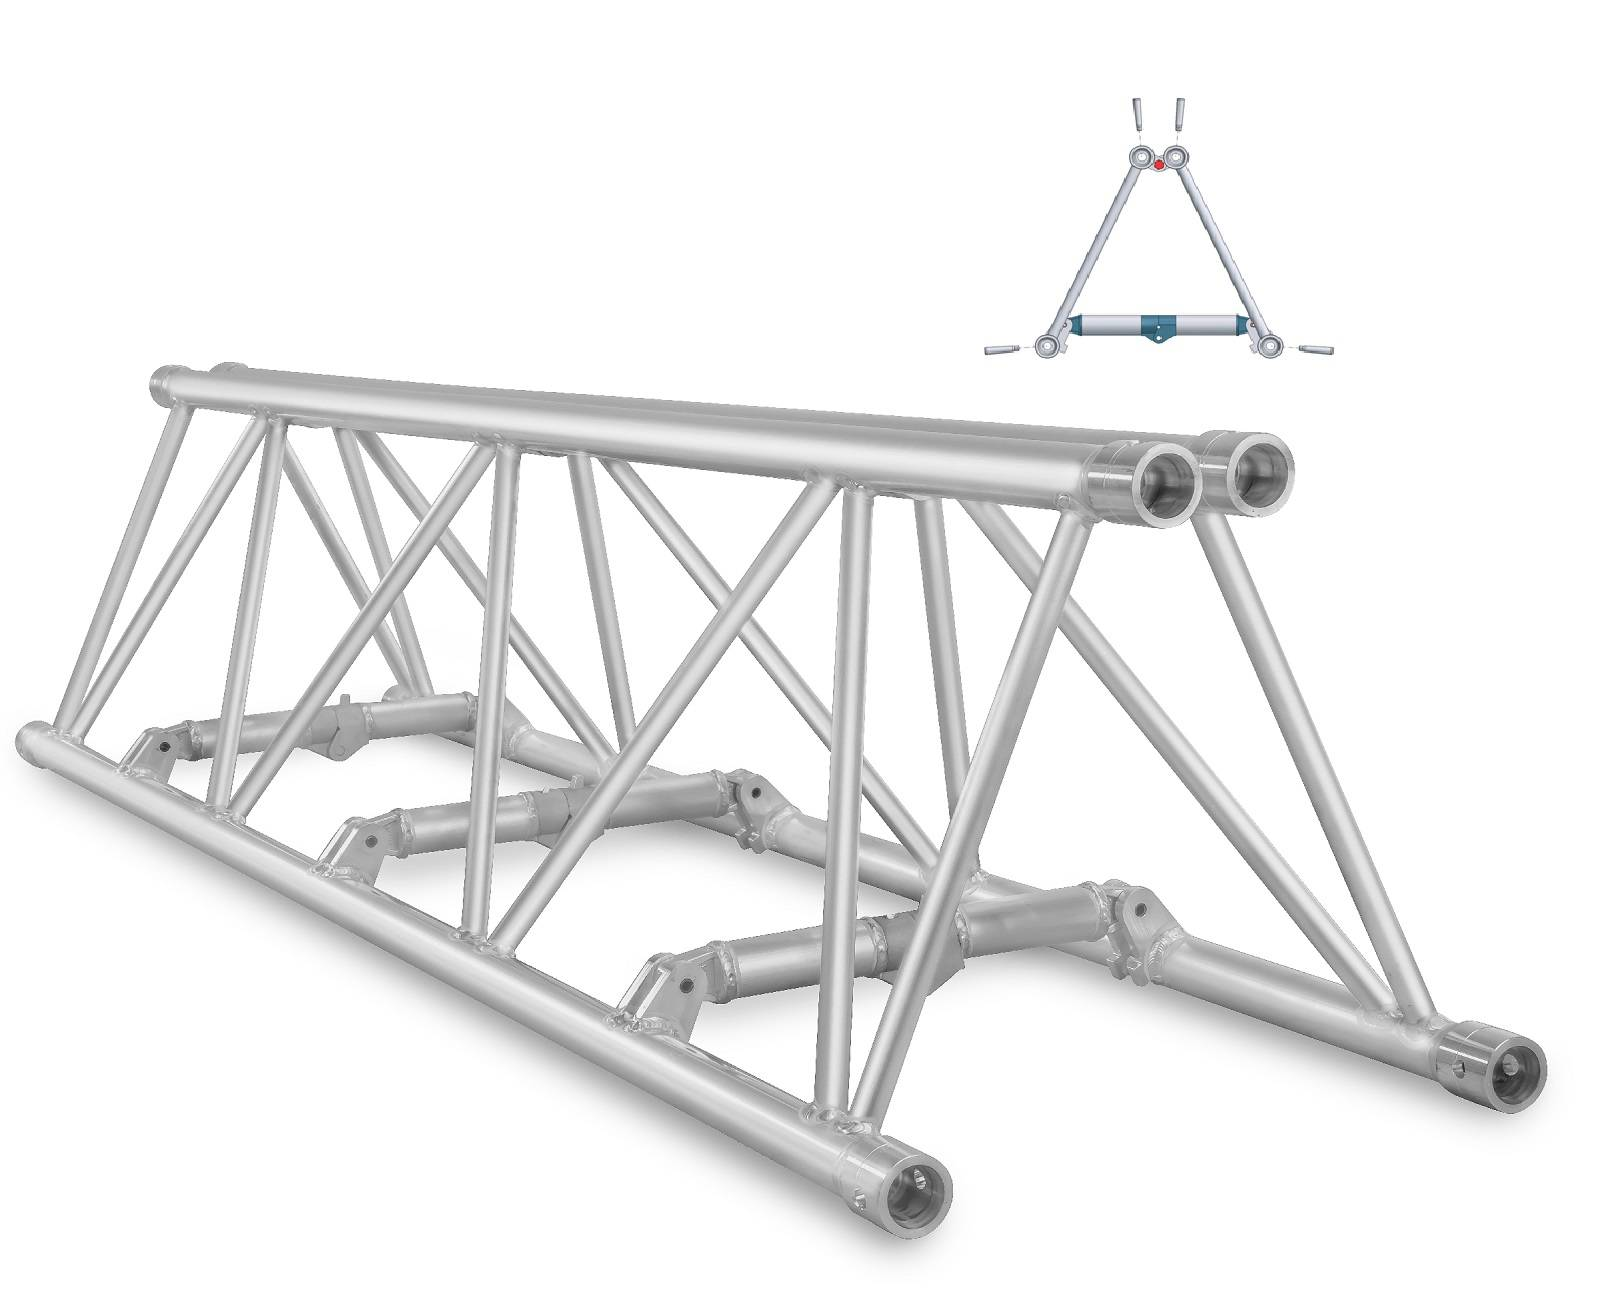 M520 - High Capacity truss range including compact folding option